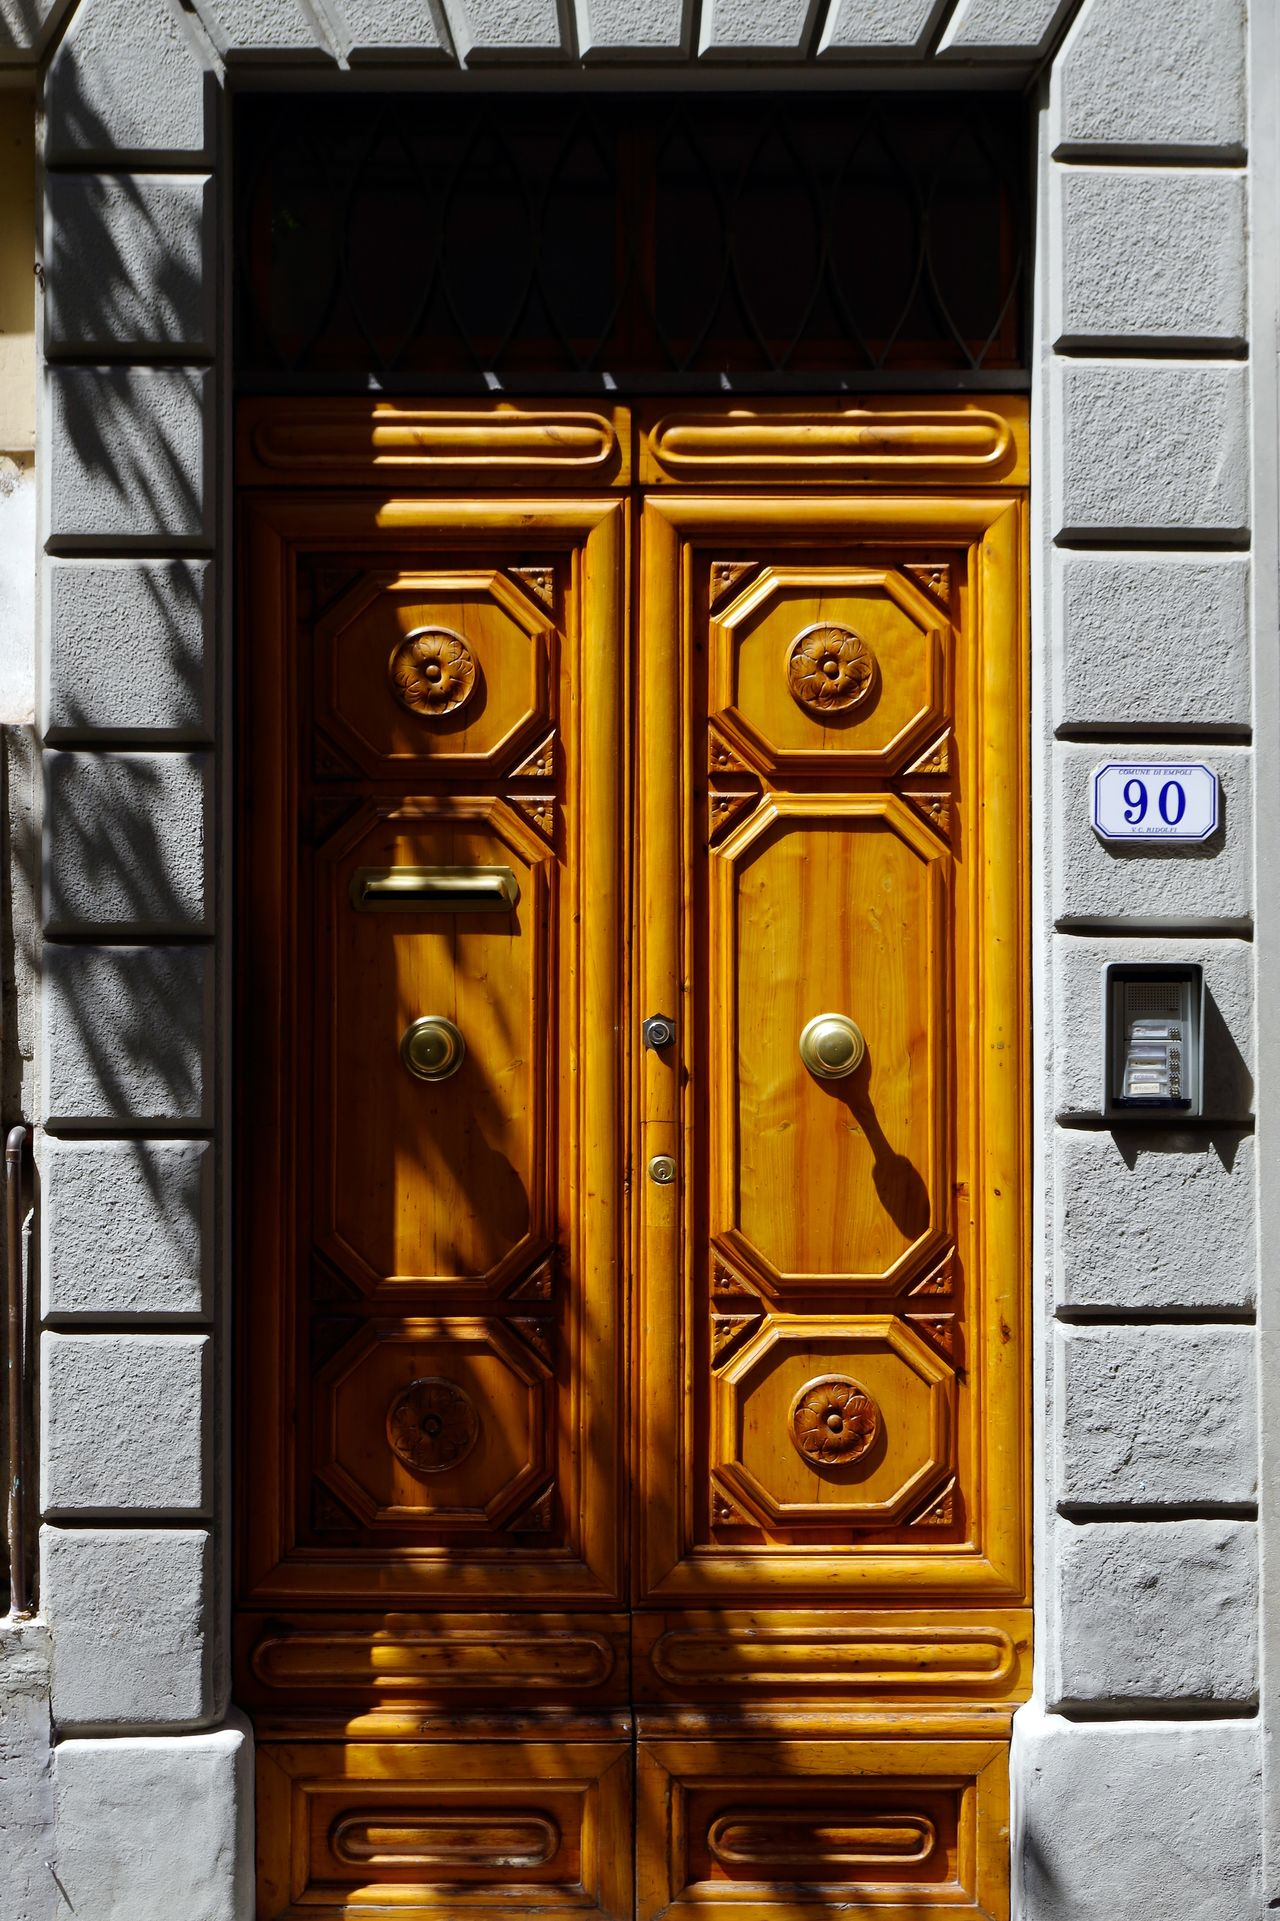 Architecture Building Exterior Close-up Closed Day Door Door Handle Entry Exclusion No People Outdoors Protection Rejection Safety Secrecy Security Yellow BYOPaper! The Architect - 2017 EyeEm Awards